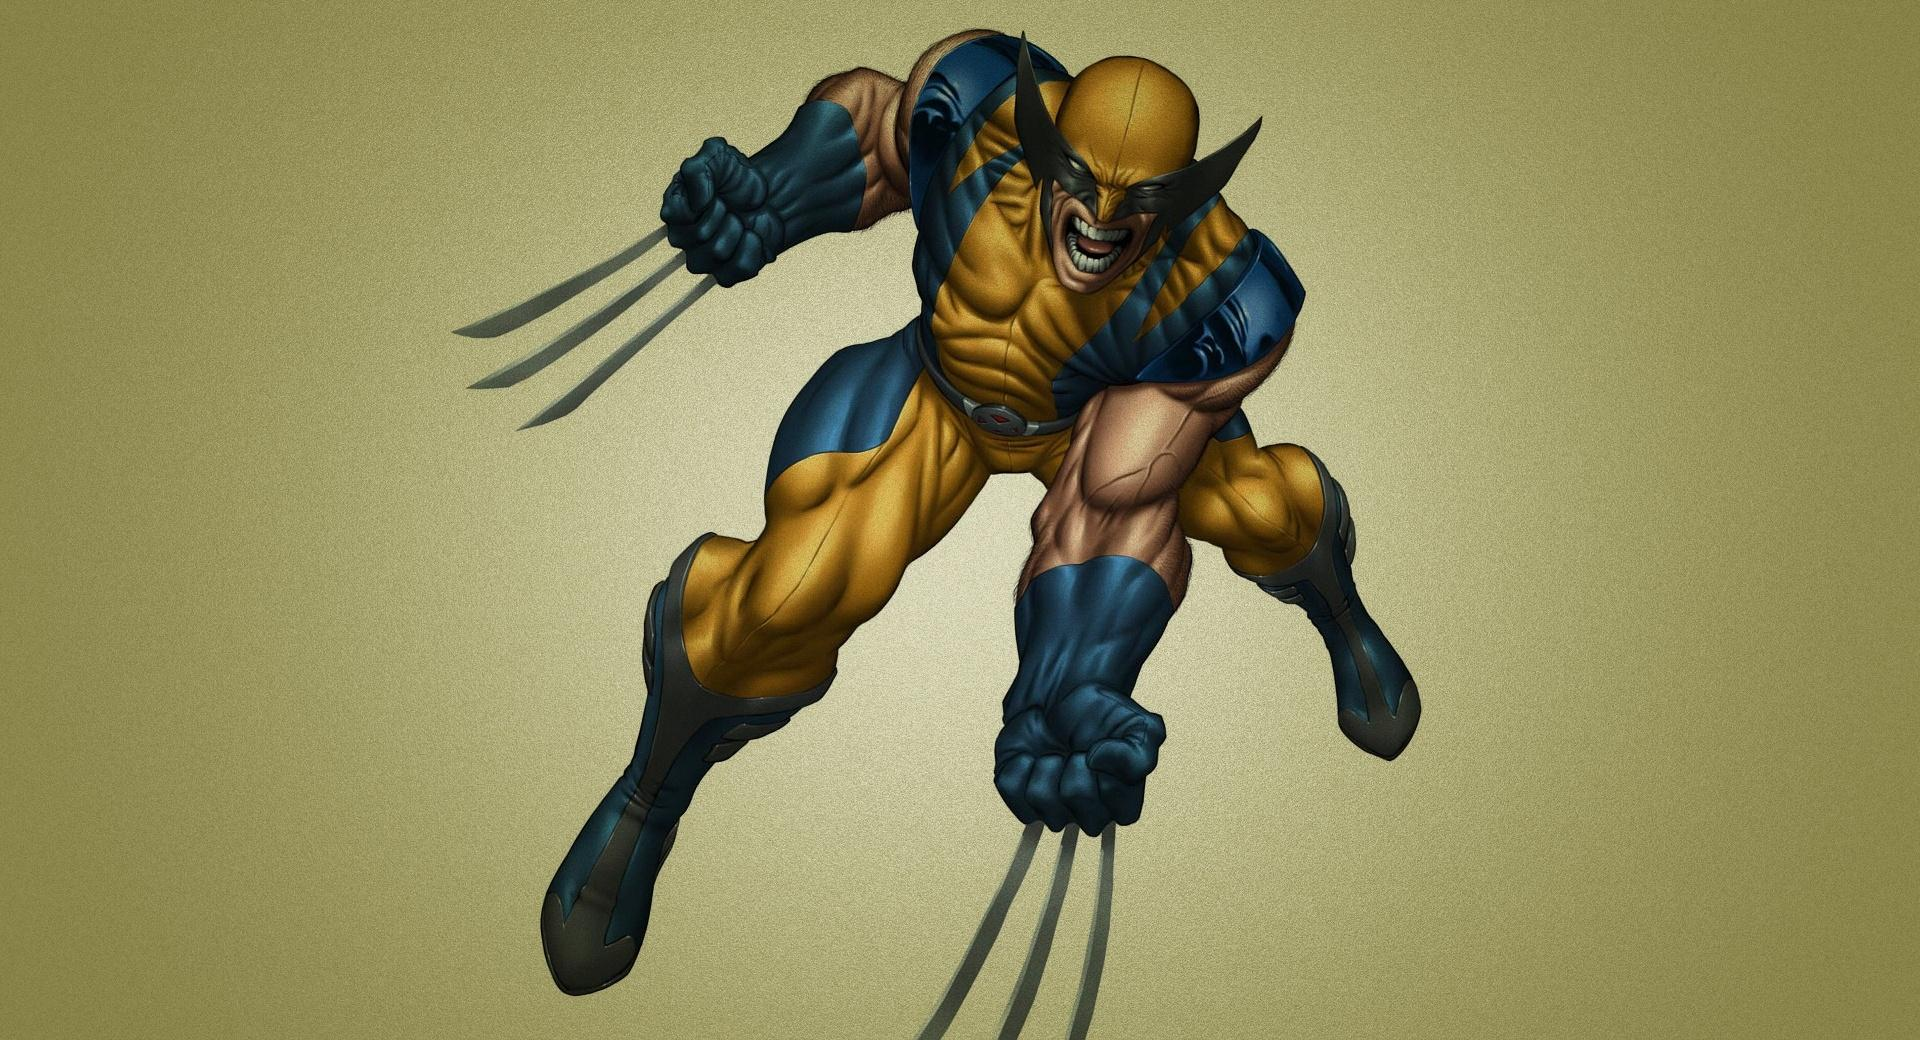 Wolverine Comic at 640 x 1136 iPhone 5 size wallpapers HD quality